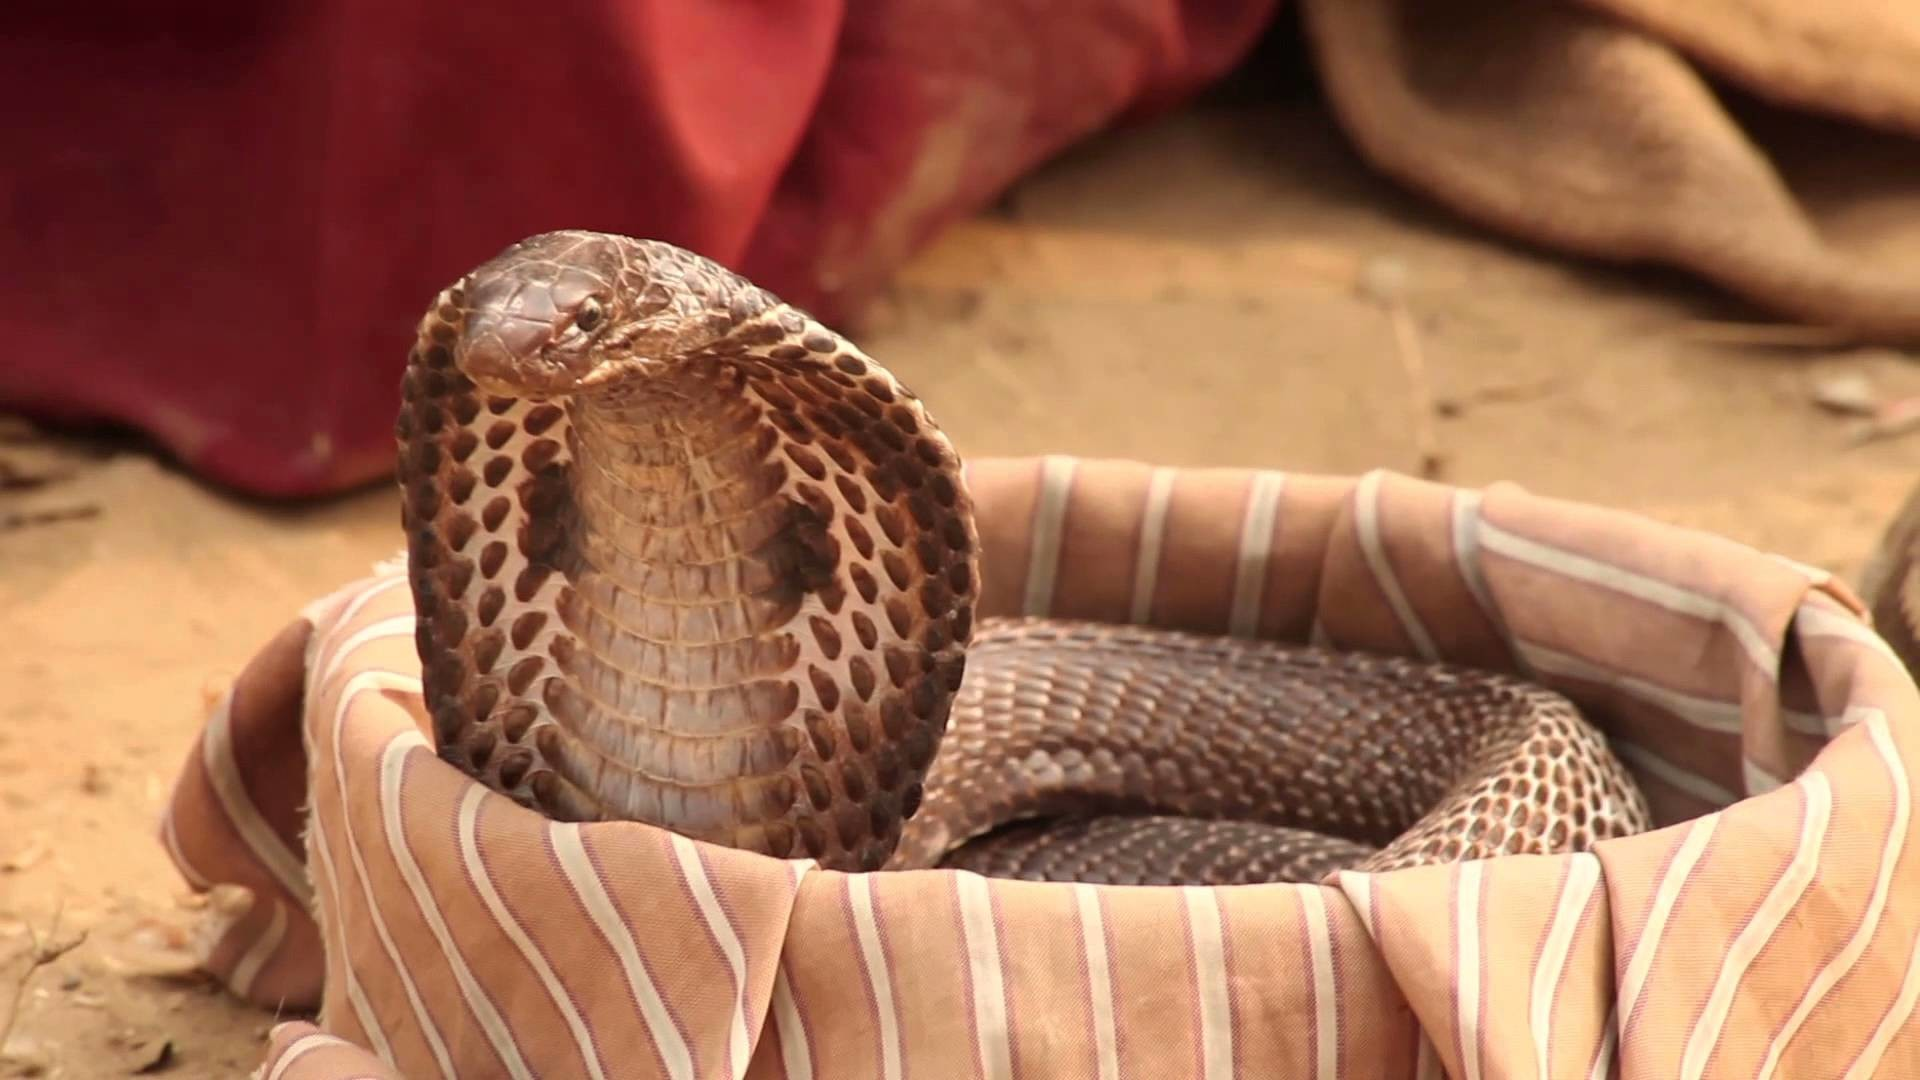 Snake Eyes Hd Wallpapers Indian King Cobra Snake Wallpaper 50 Images